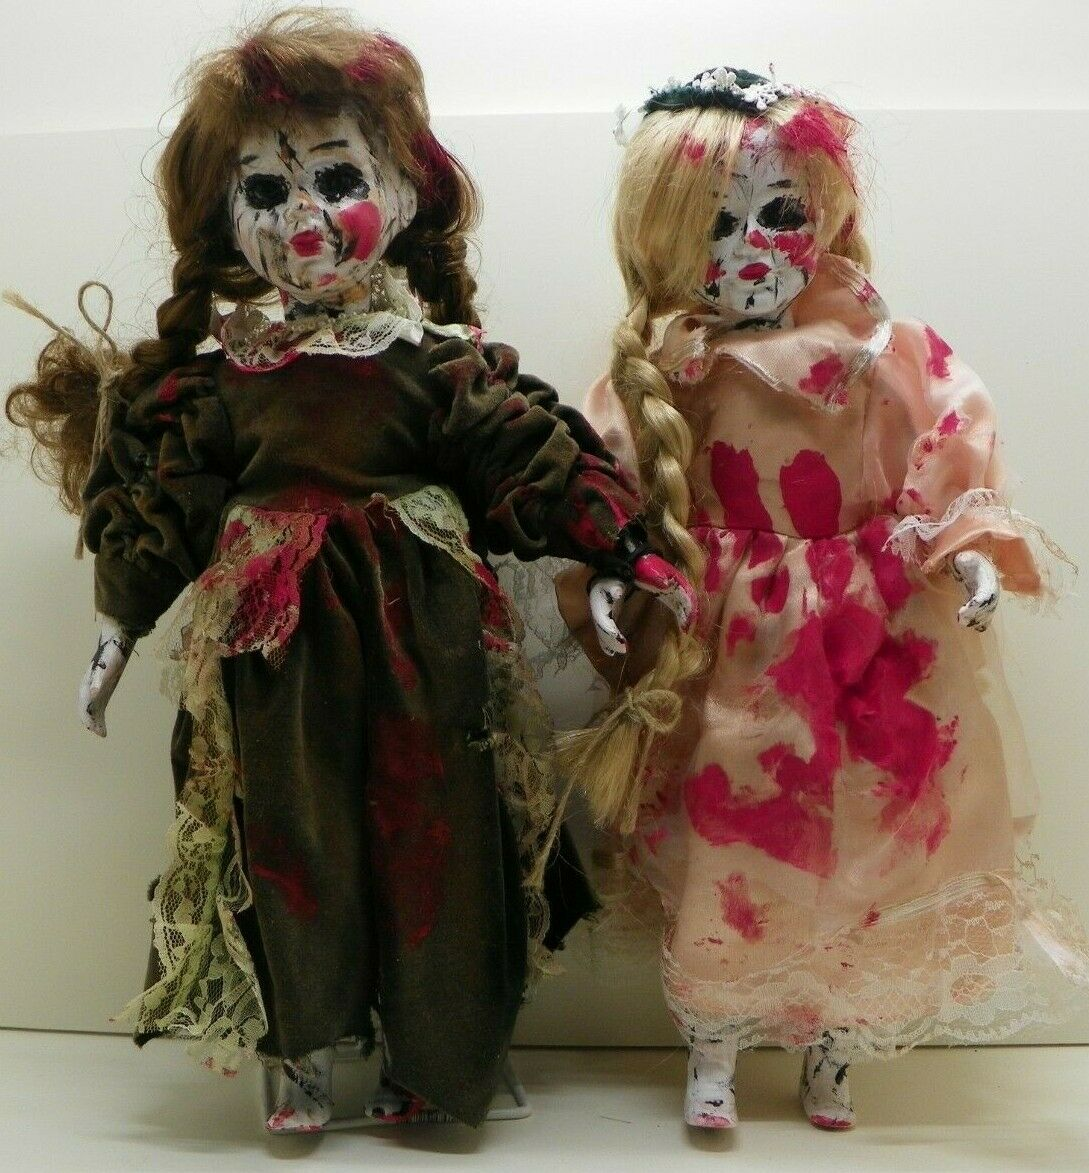 16  Porcelain dolls, One of a kind  The Sisters of Fate